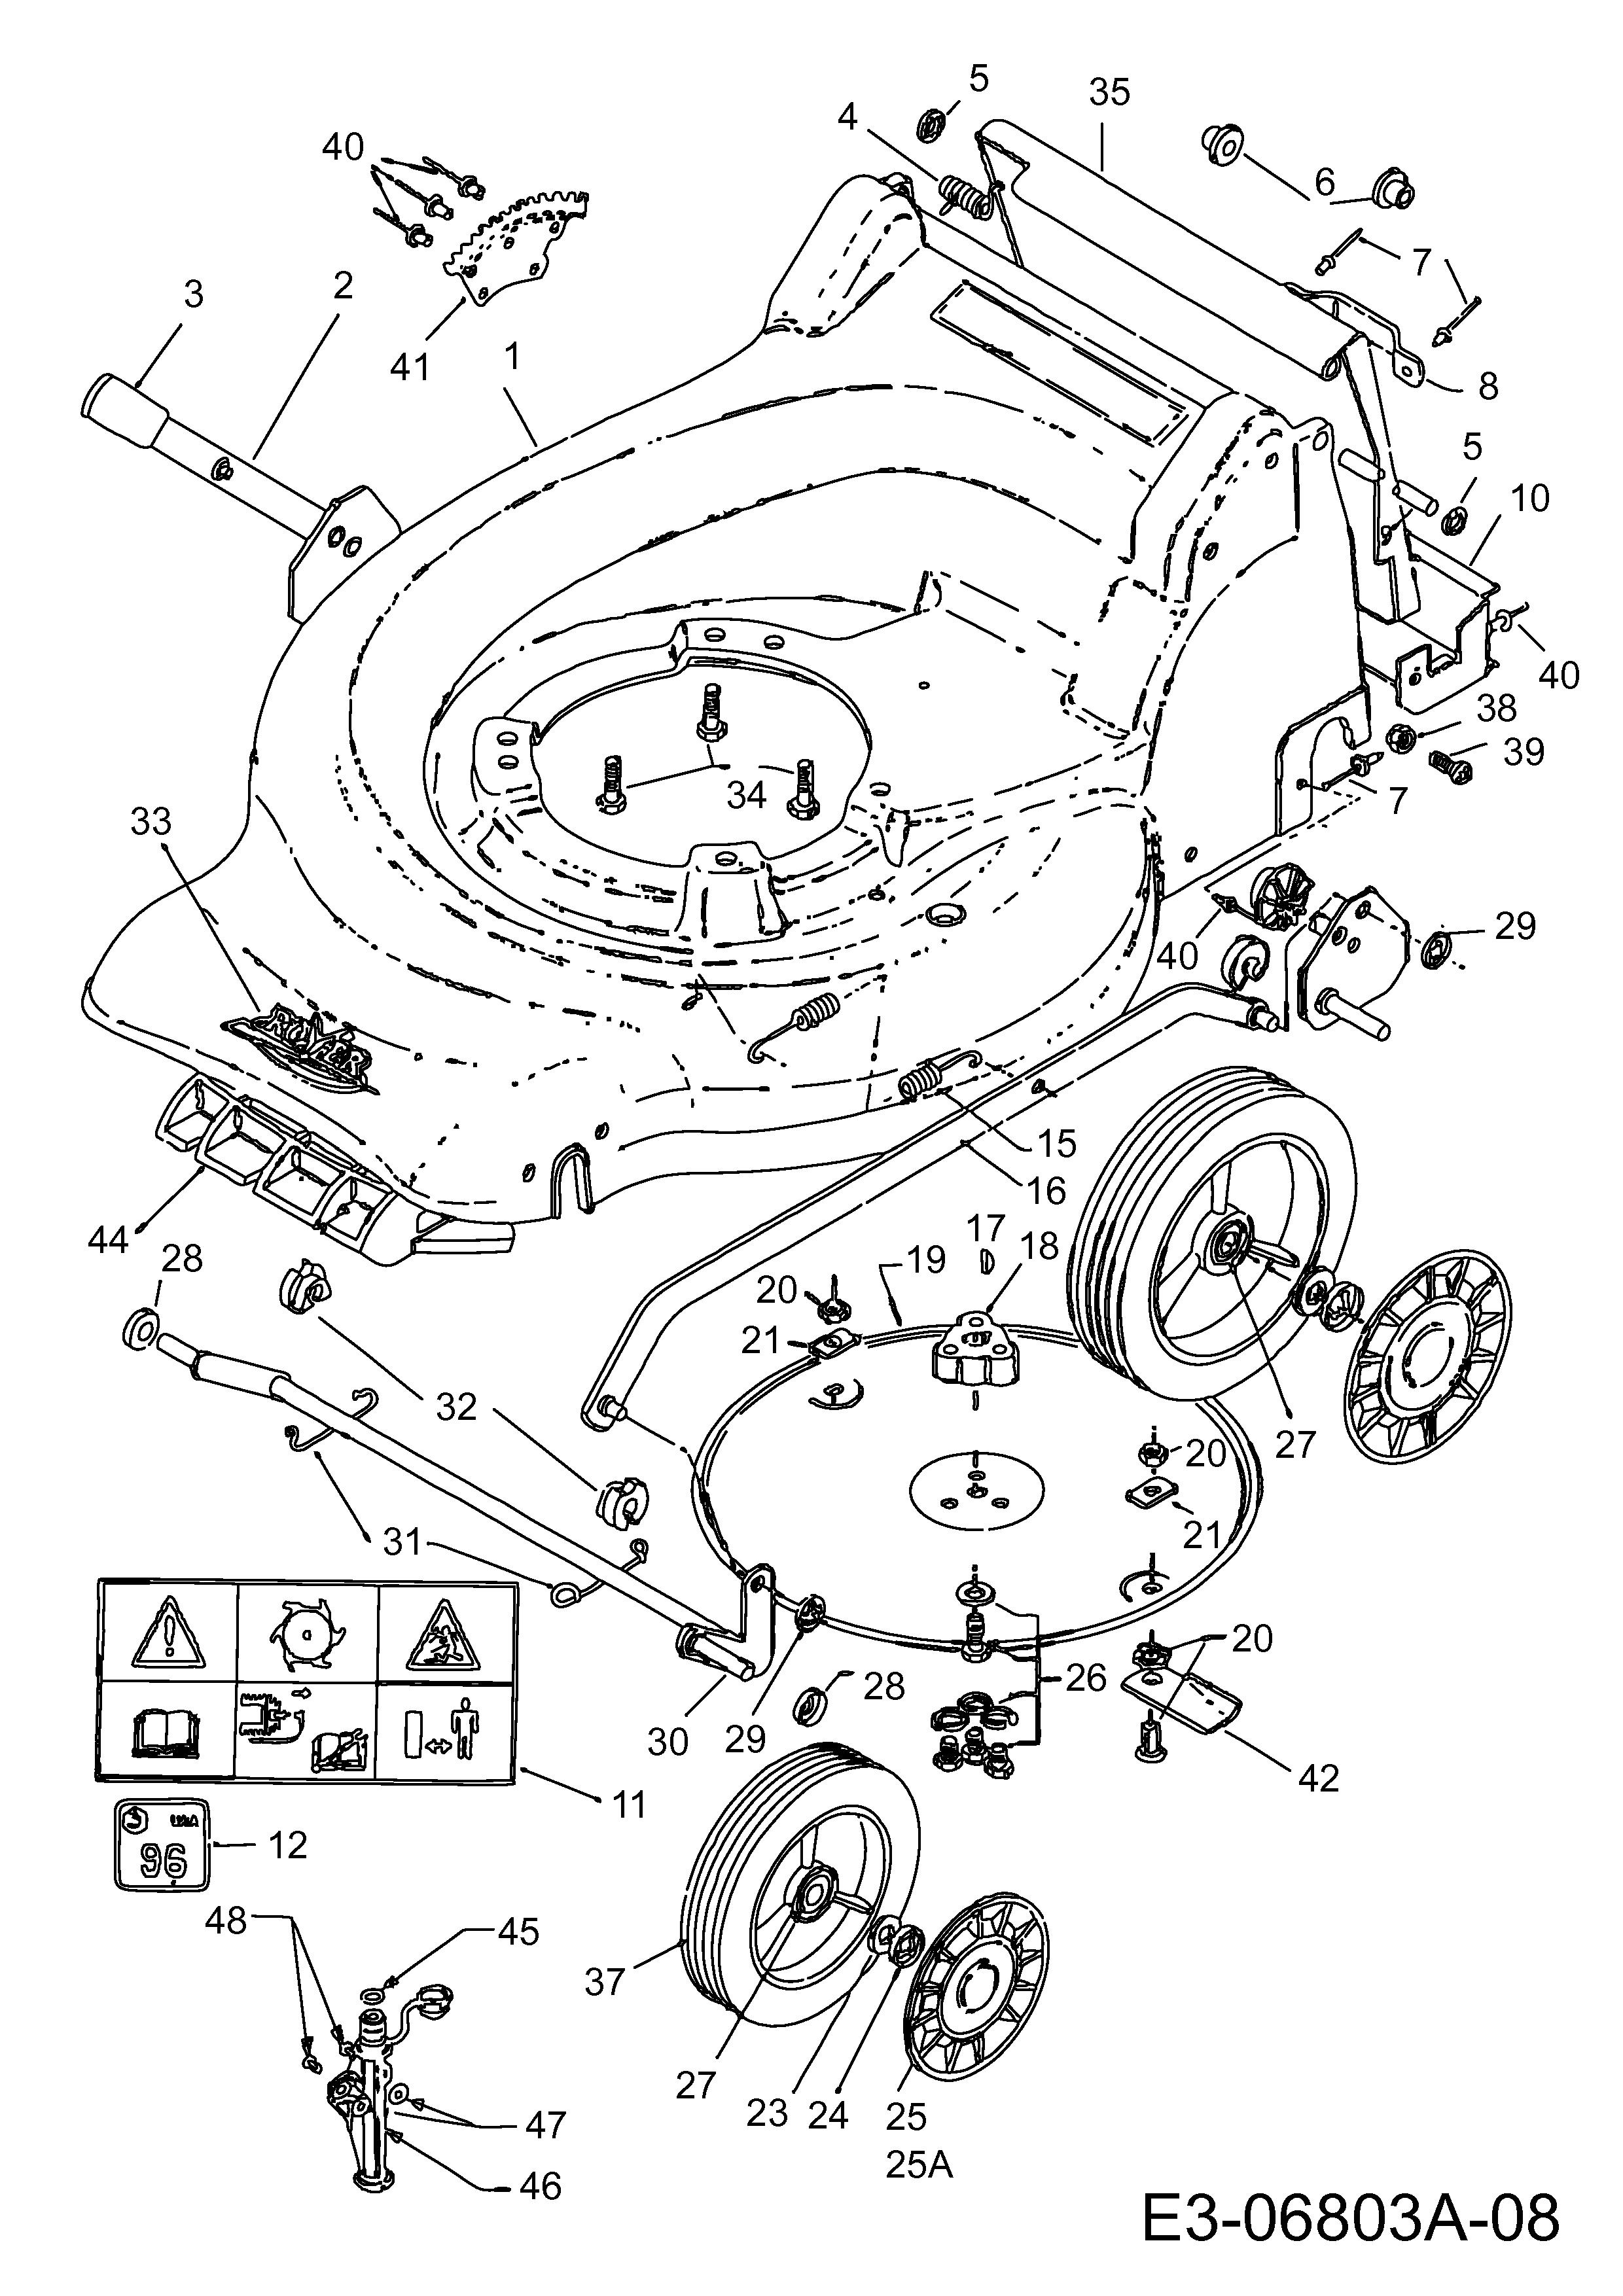 self propelled lawn mower parts